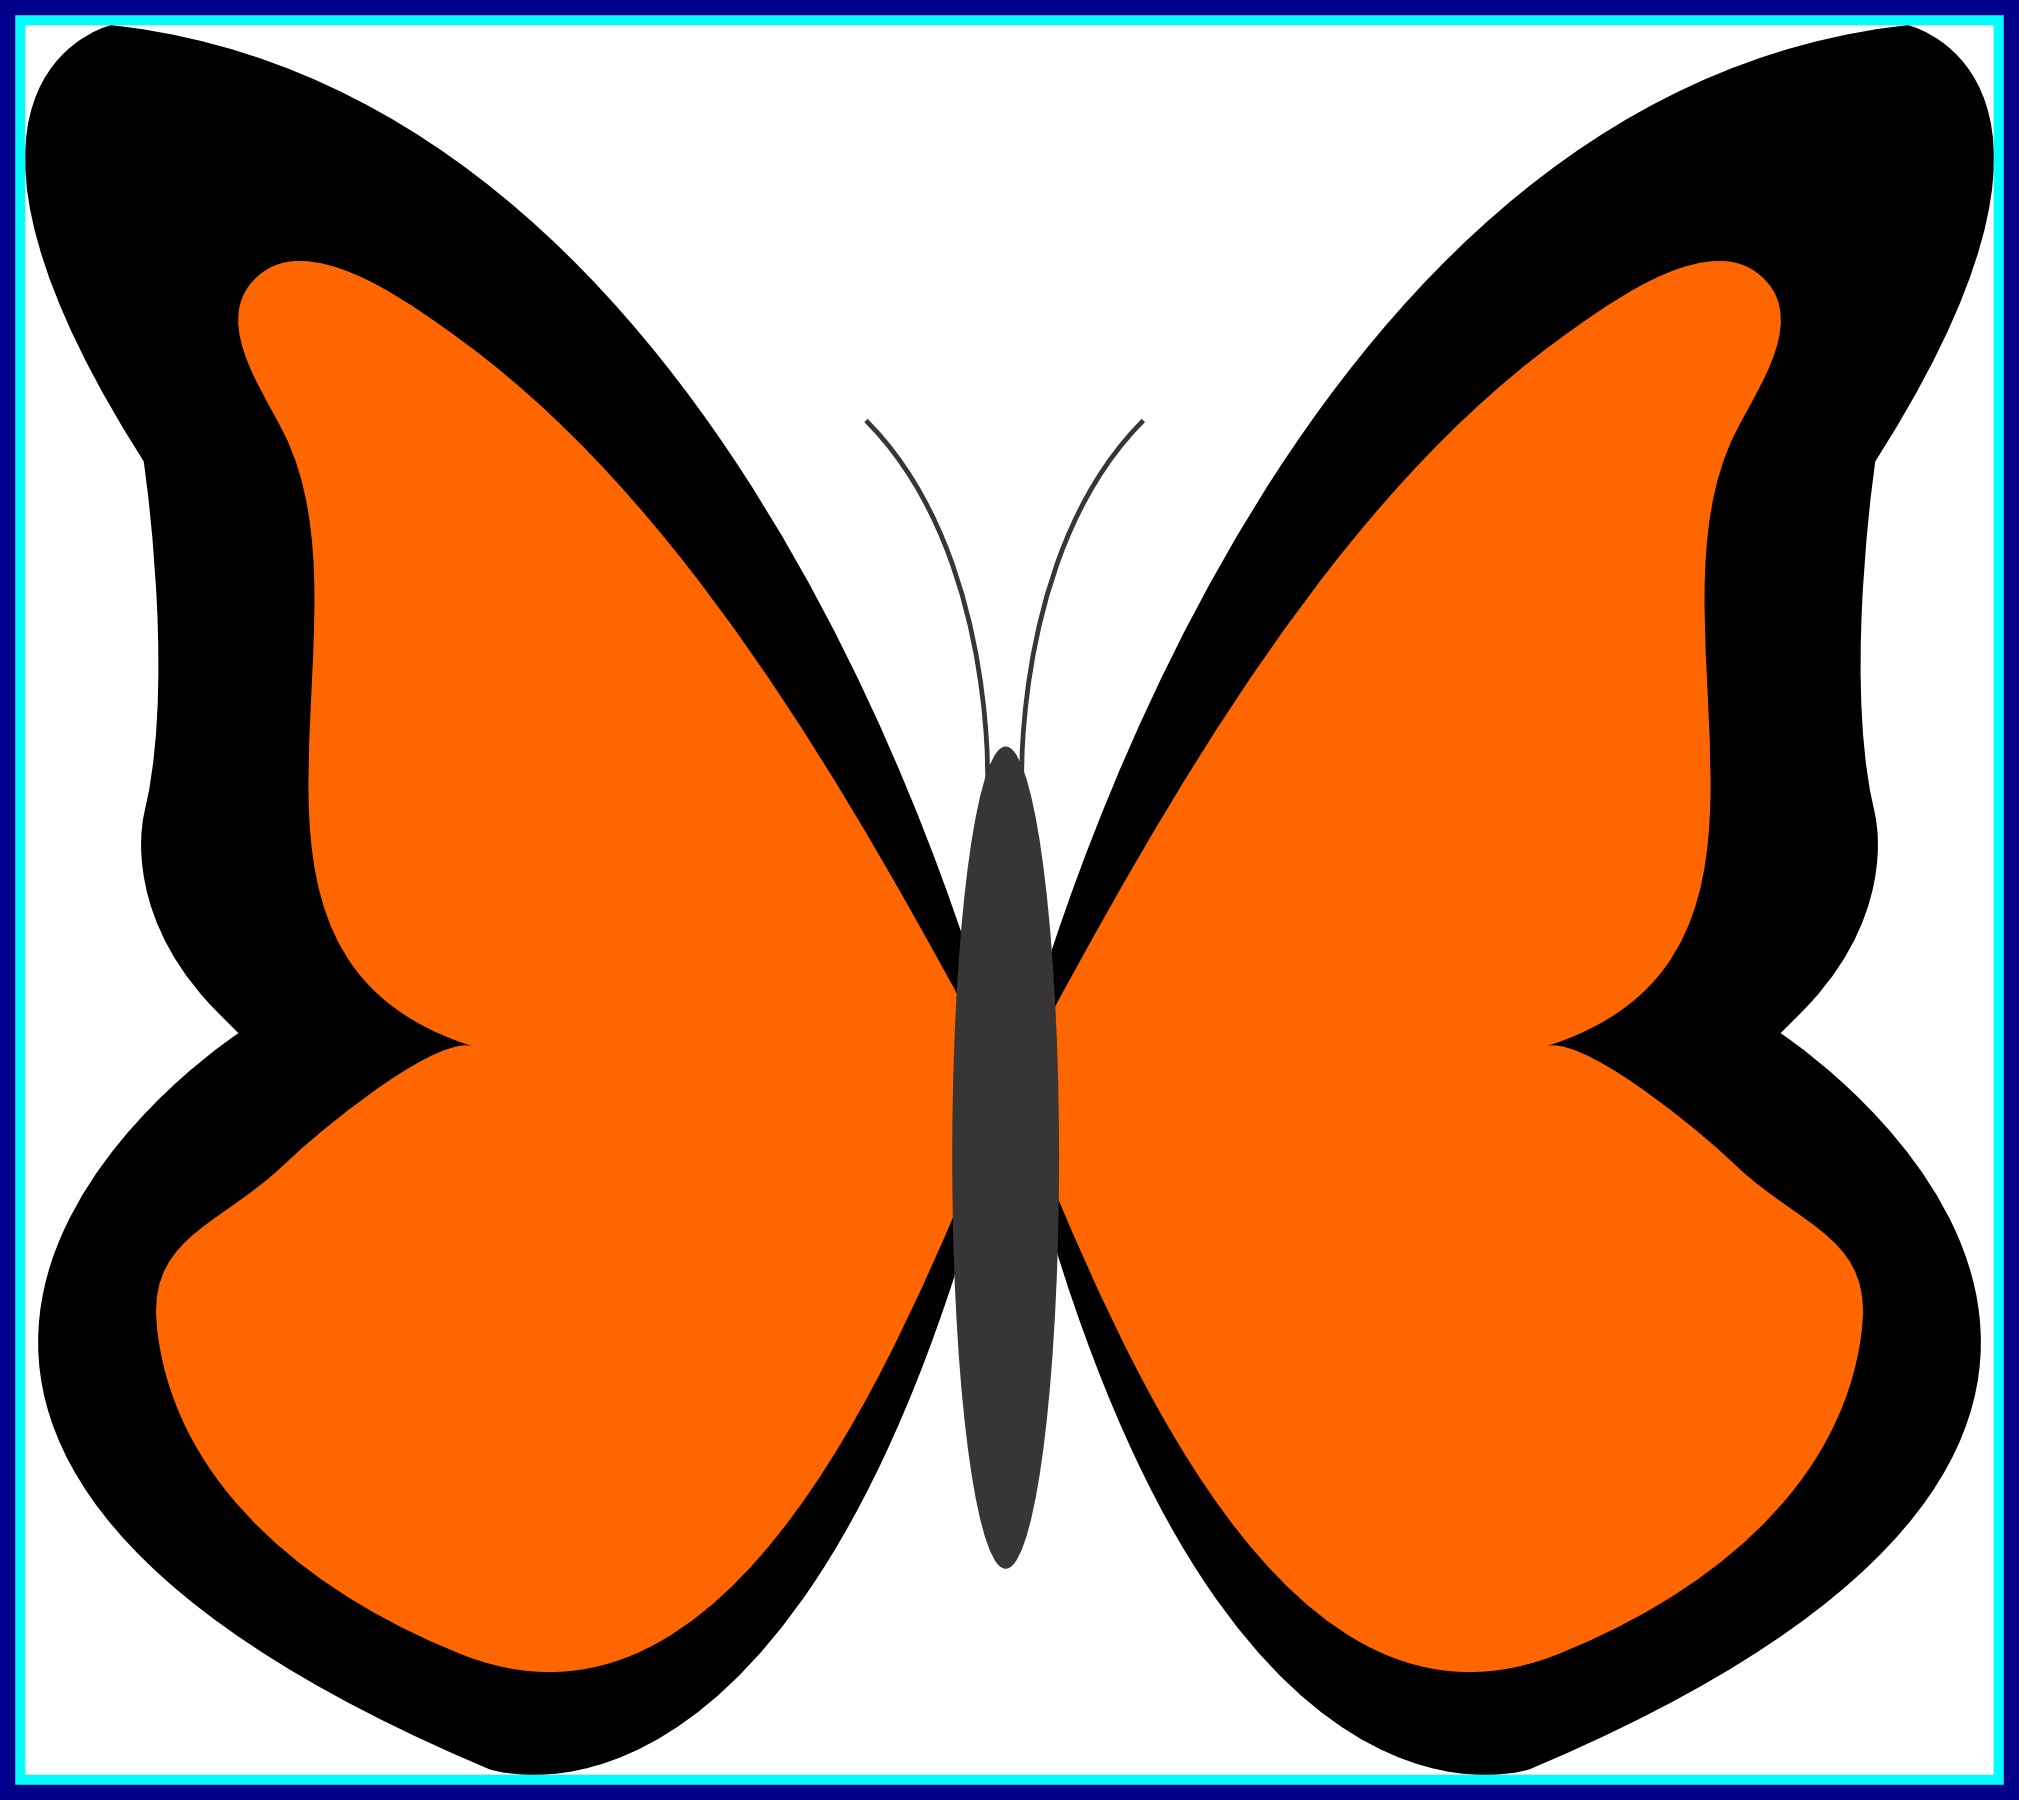 Butterfly clip art simple. Arts for free download